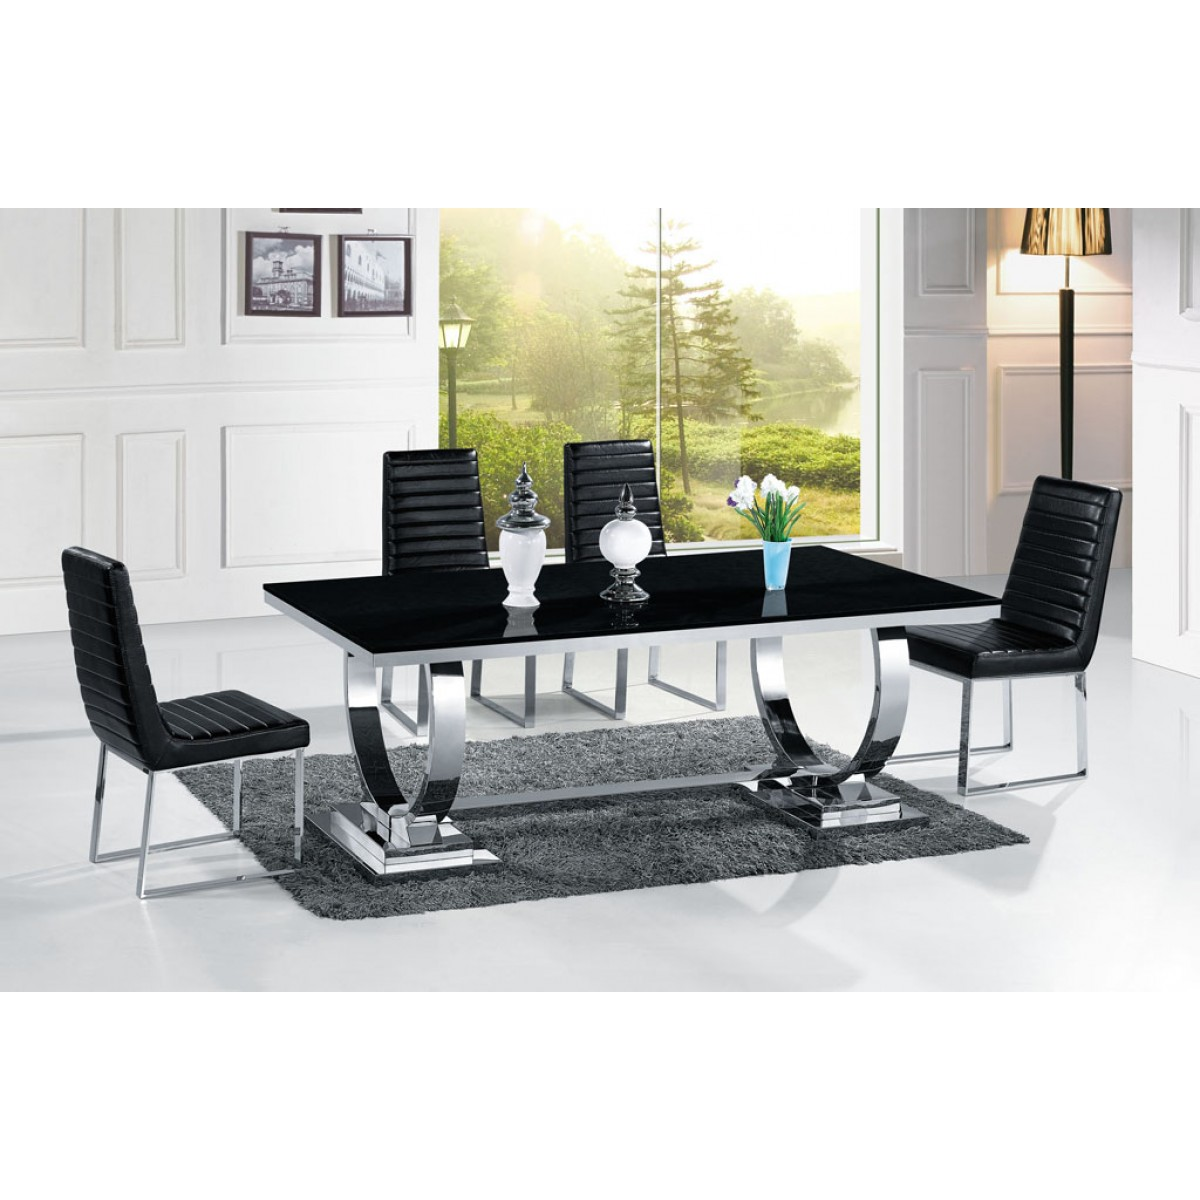 Table de salle manger en inox venezia mabre ou verre for Table de salle a manger 12 places